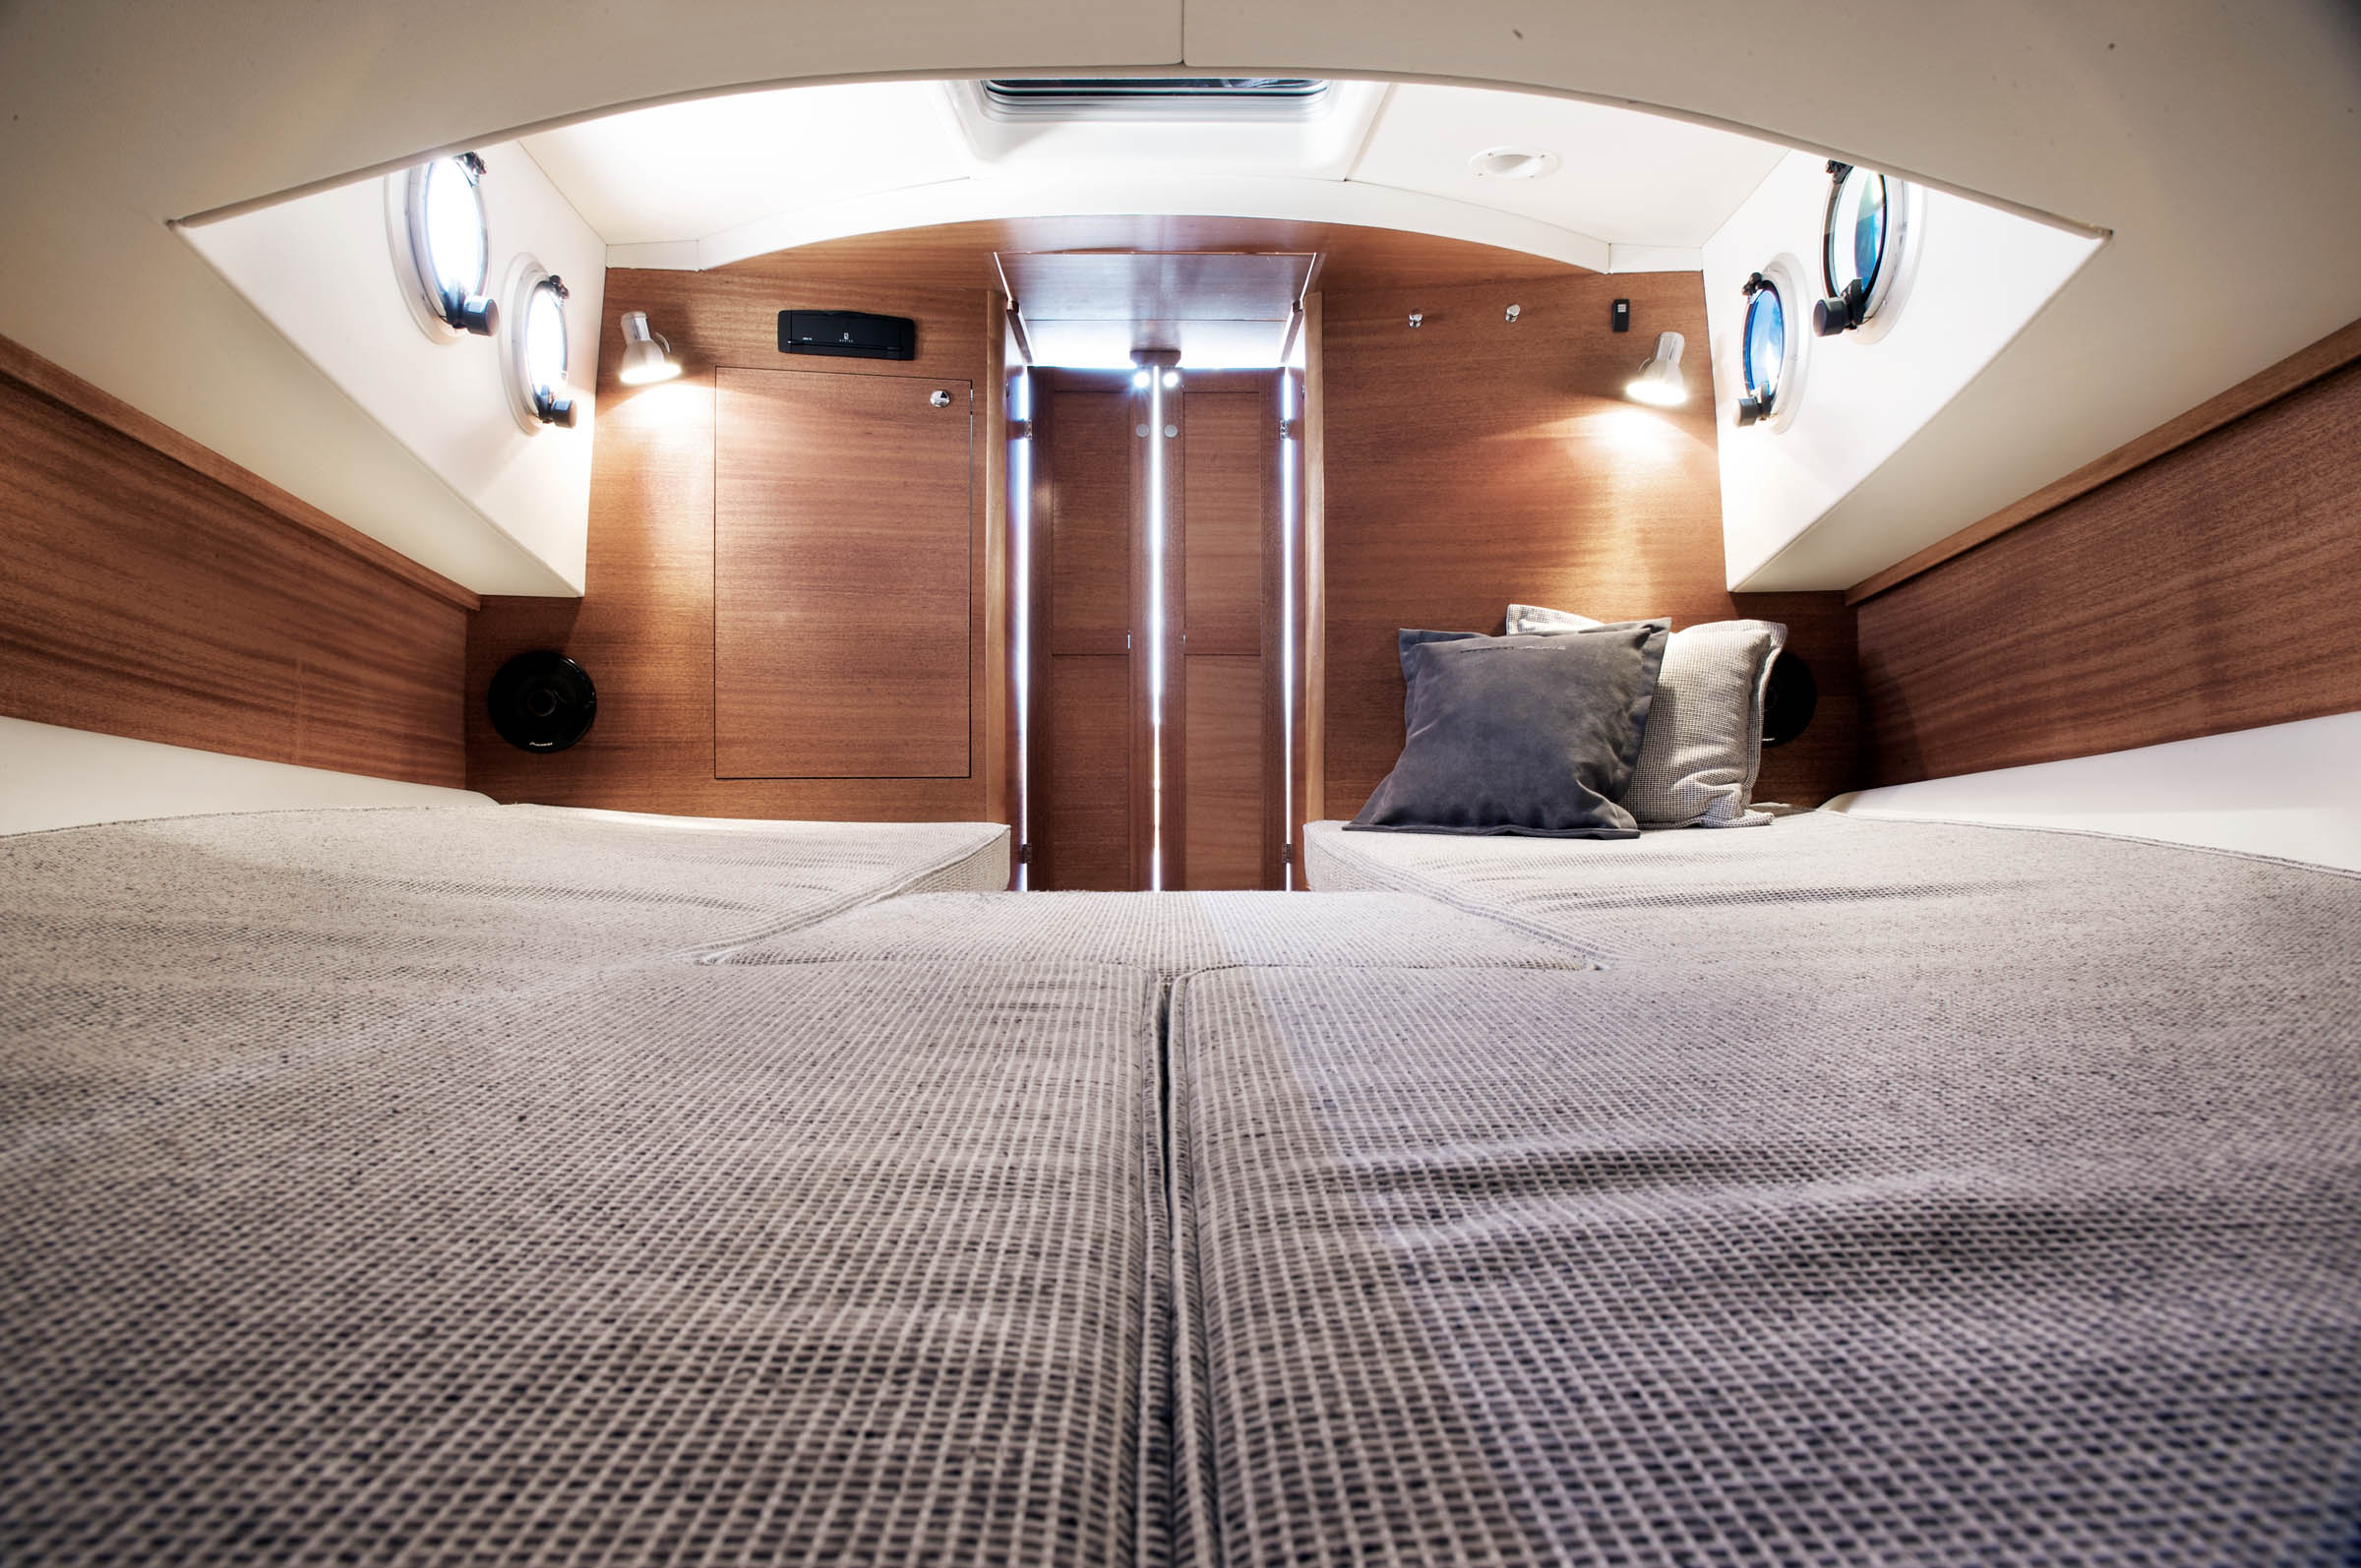 The forecabin of a Paragon 25. Two beds or sofas with pillows and windows on the side